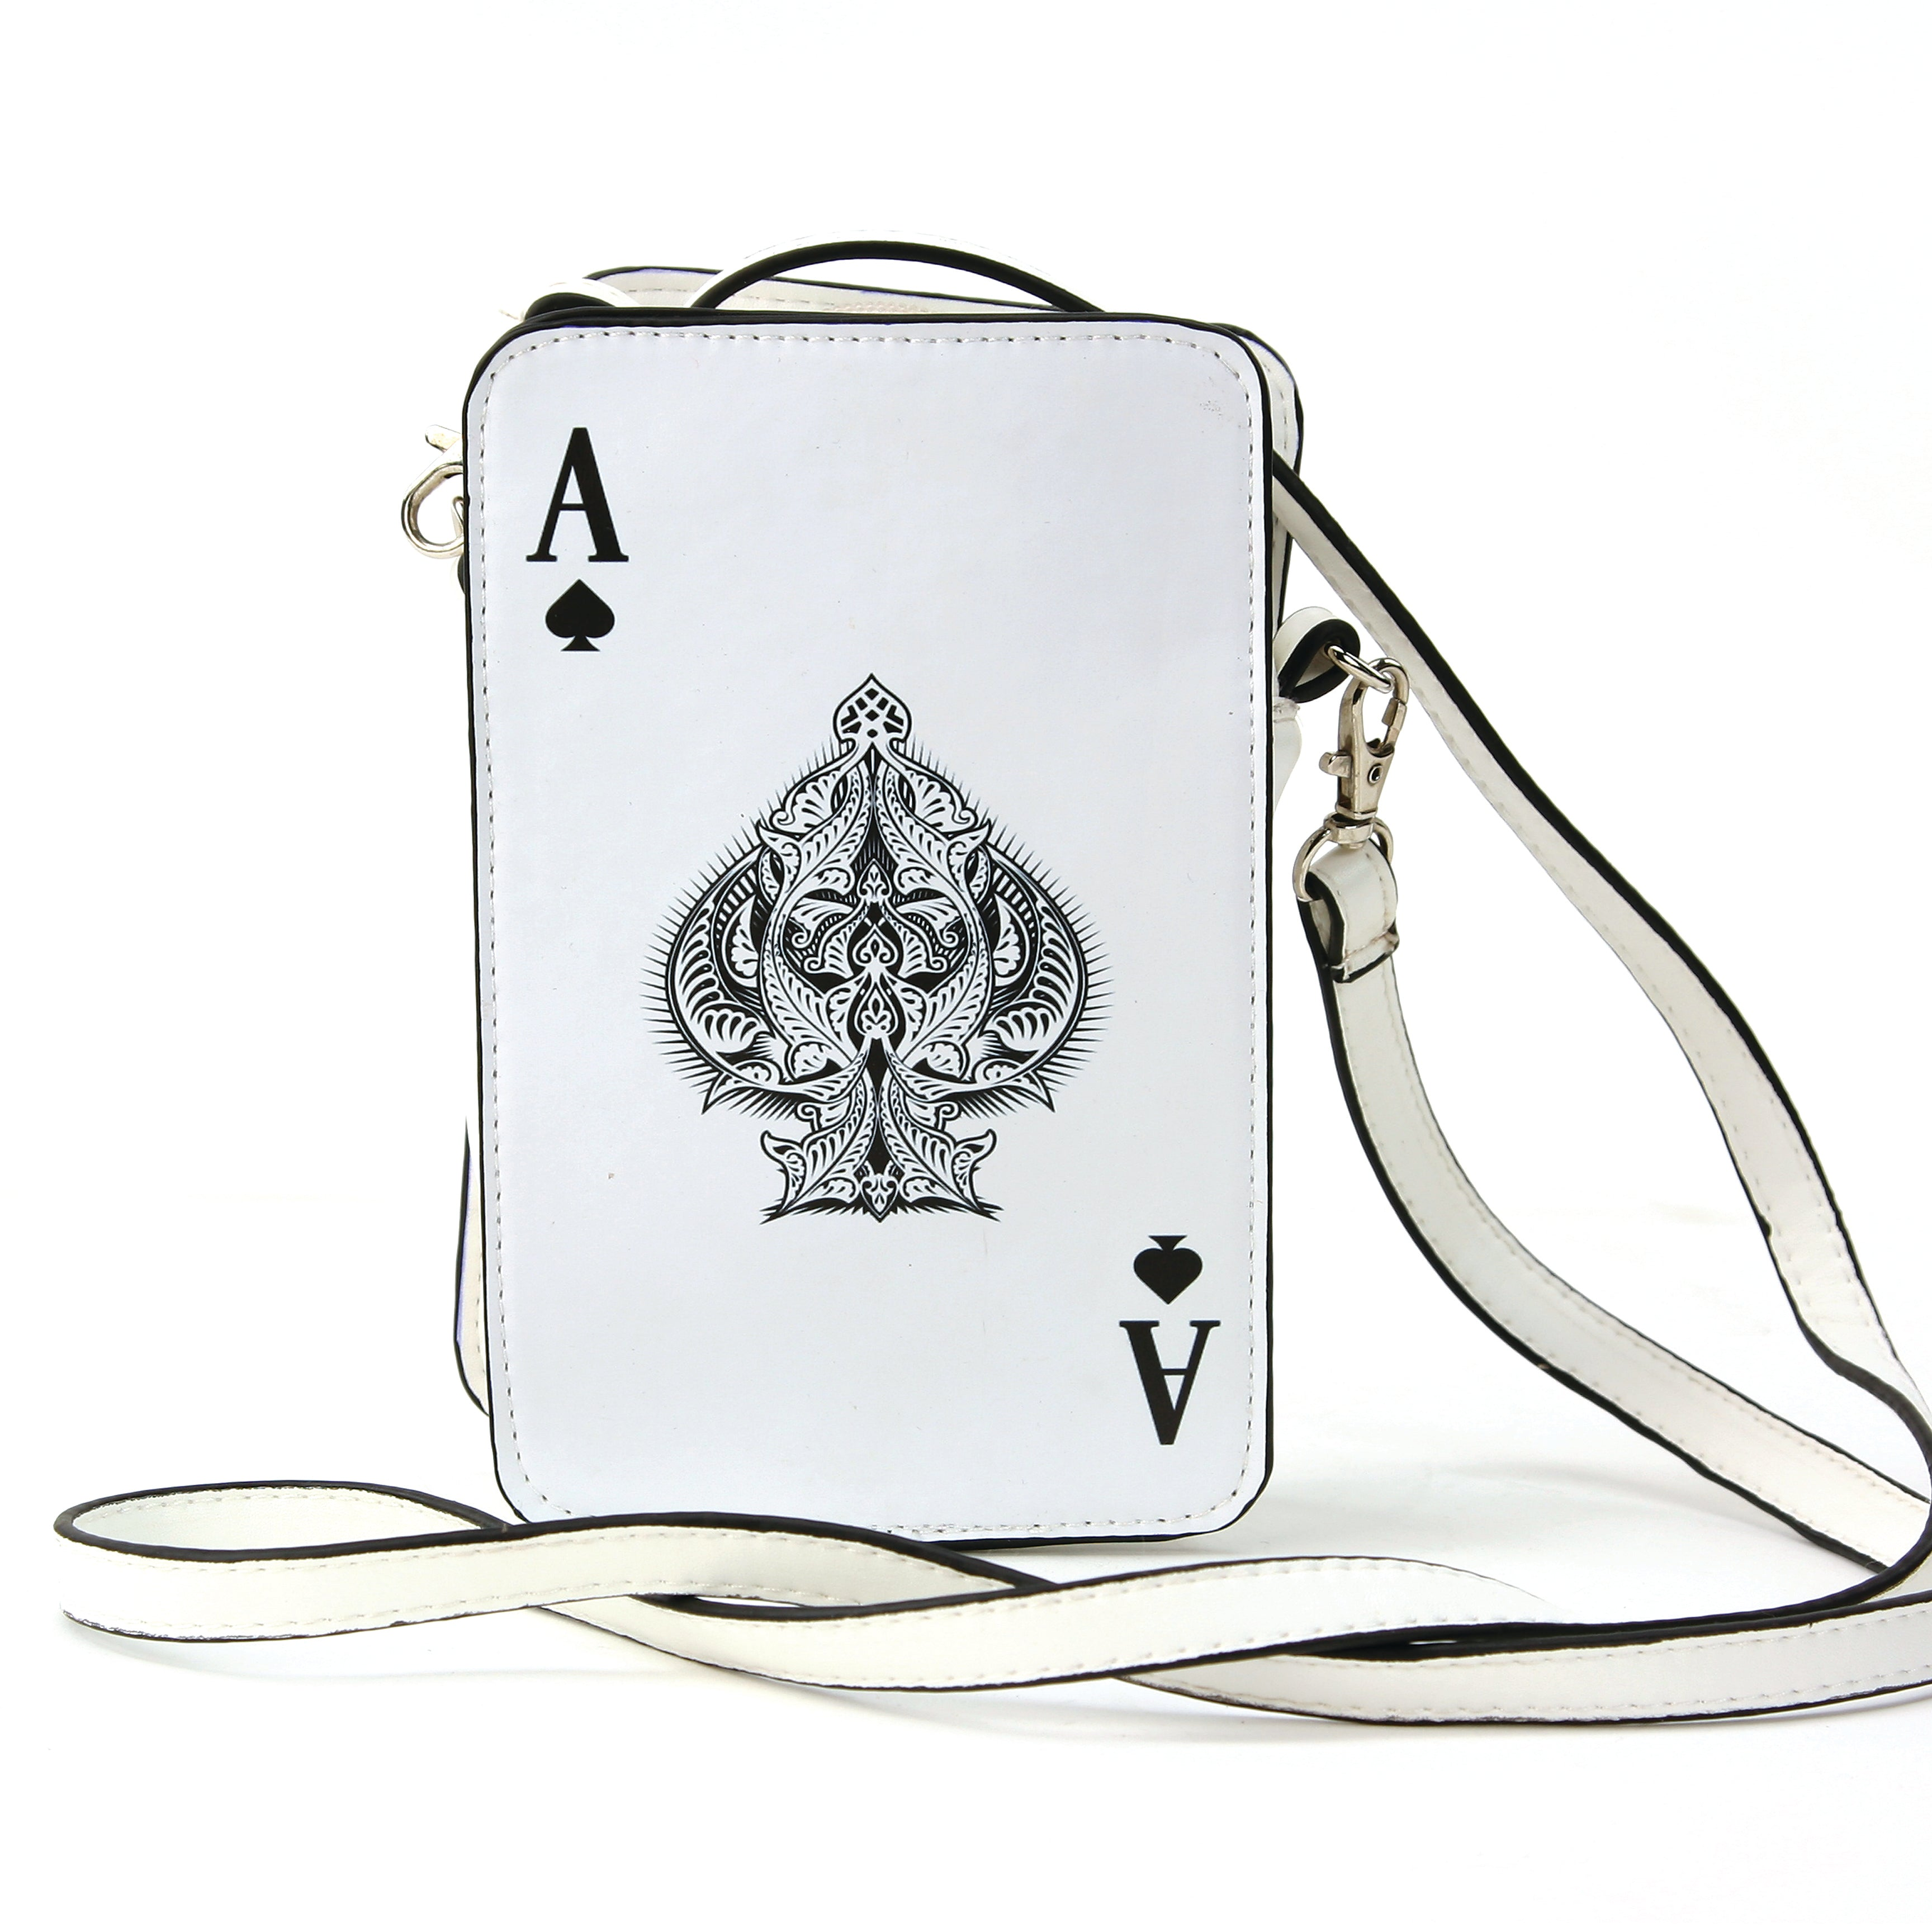 Ace of Spade Cross Body Bag in Vinyl MaterialAce of Spade Cross Body Bag in Vinyl Material, ace of spades front view